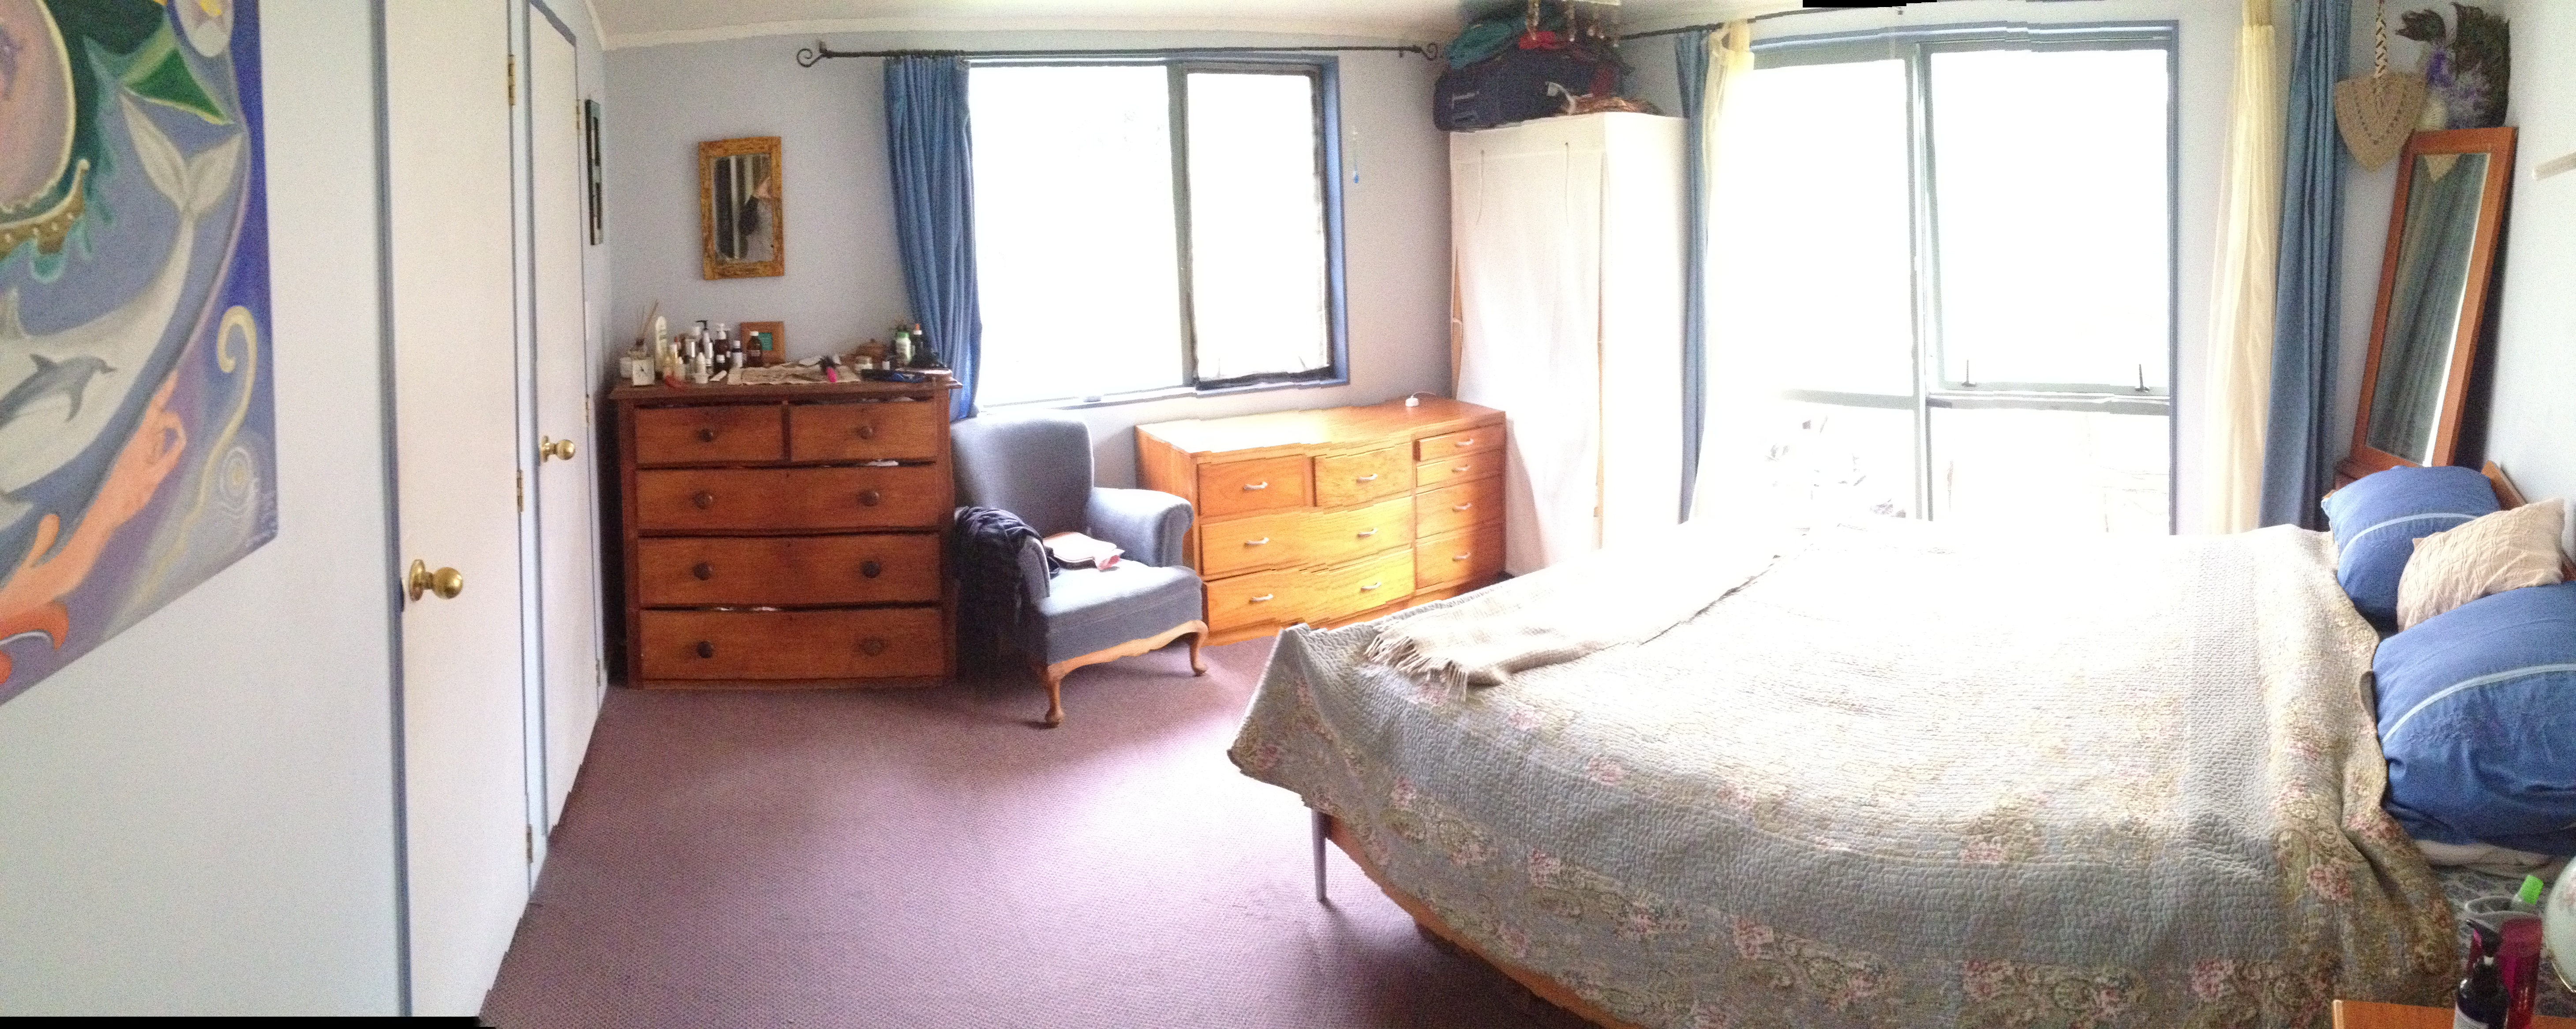 Crystal Bay Lodge - Master Bedroom